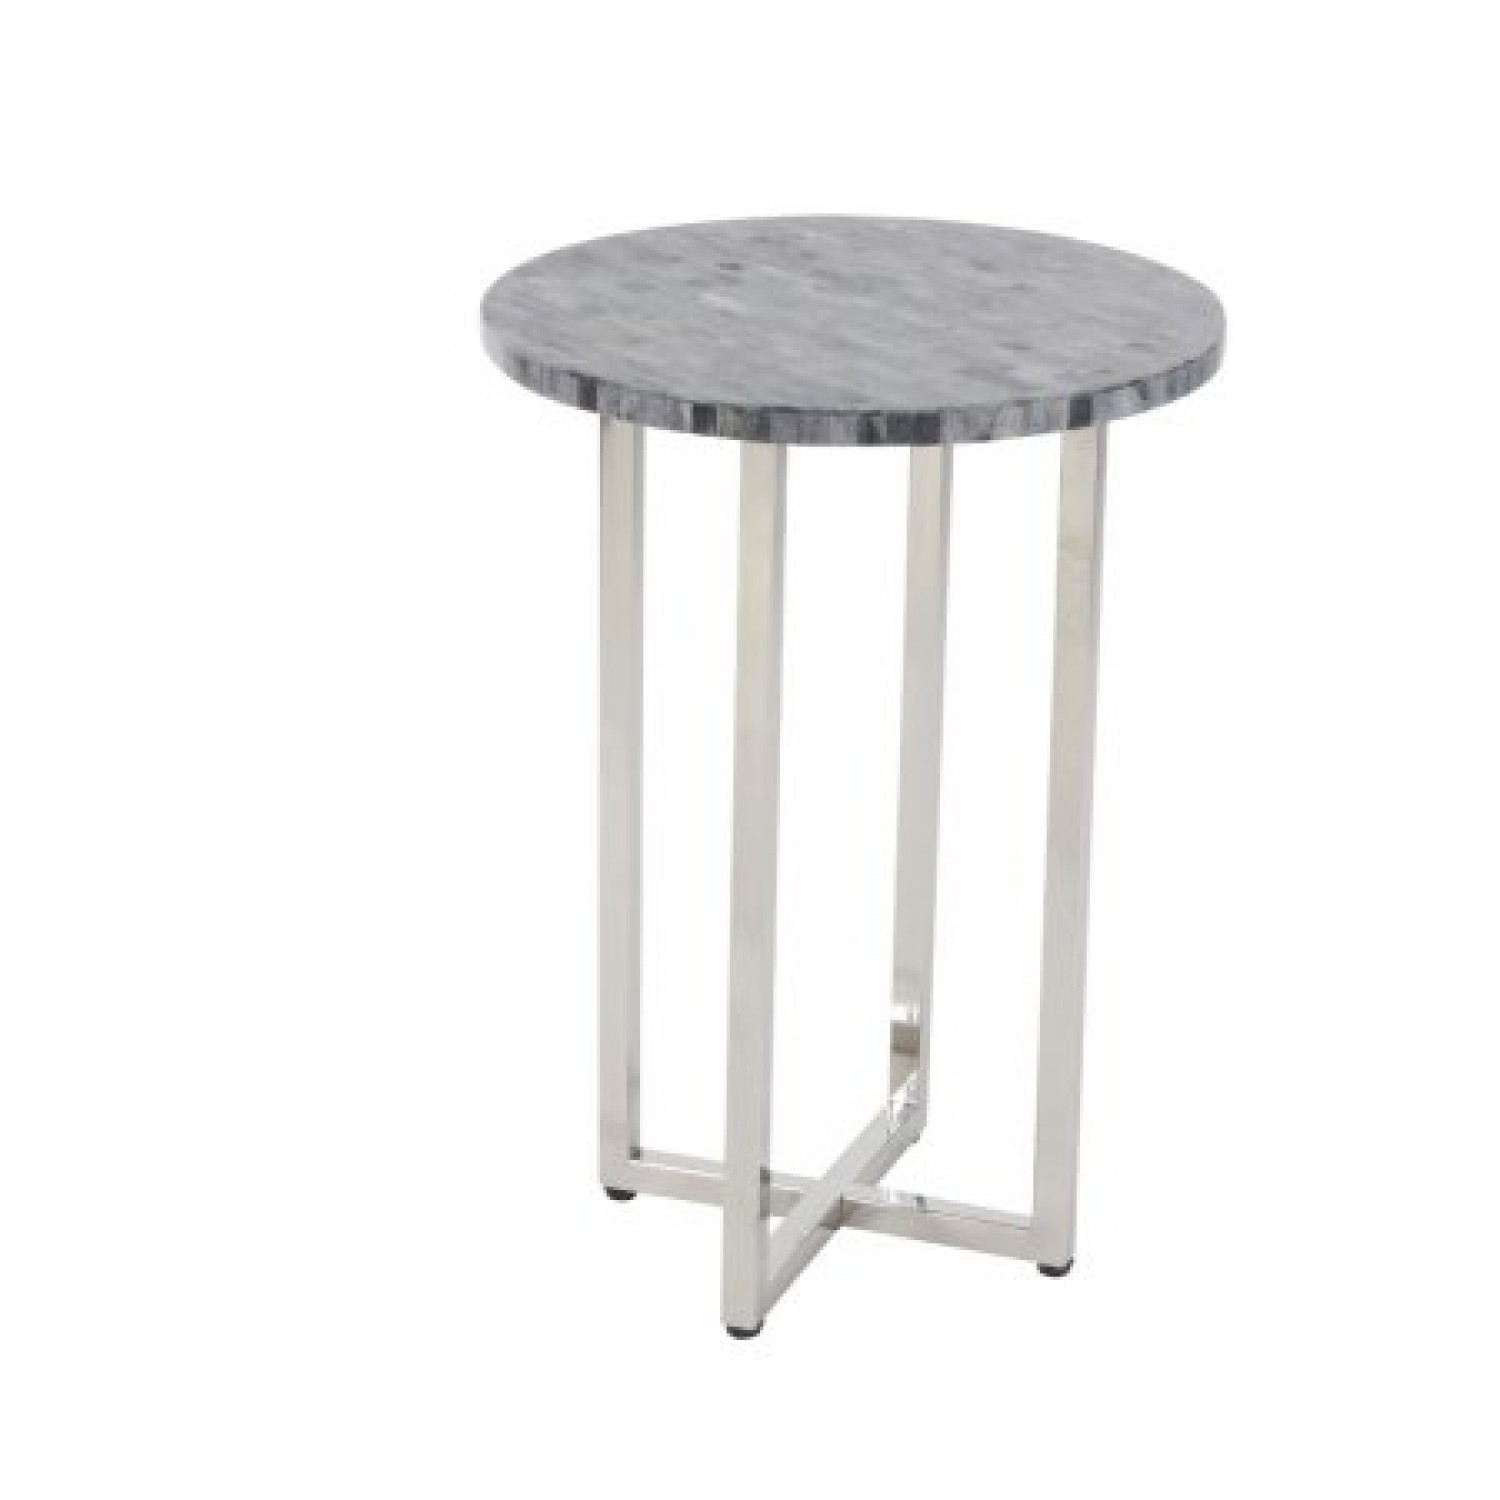 decmode contemporary inch stainless steel round accent table radiant gray modern and furniture marble with chairs uttermost laton mirrored bourse real wood coffee homesense patio